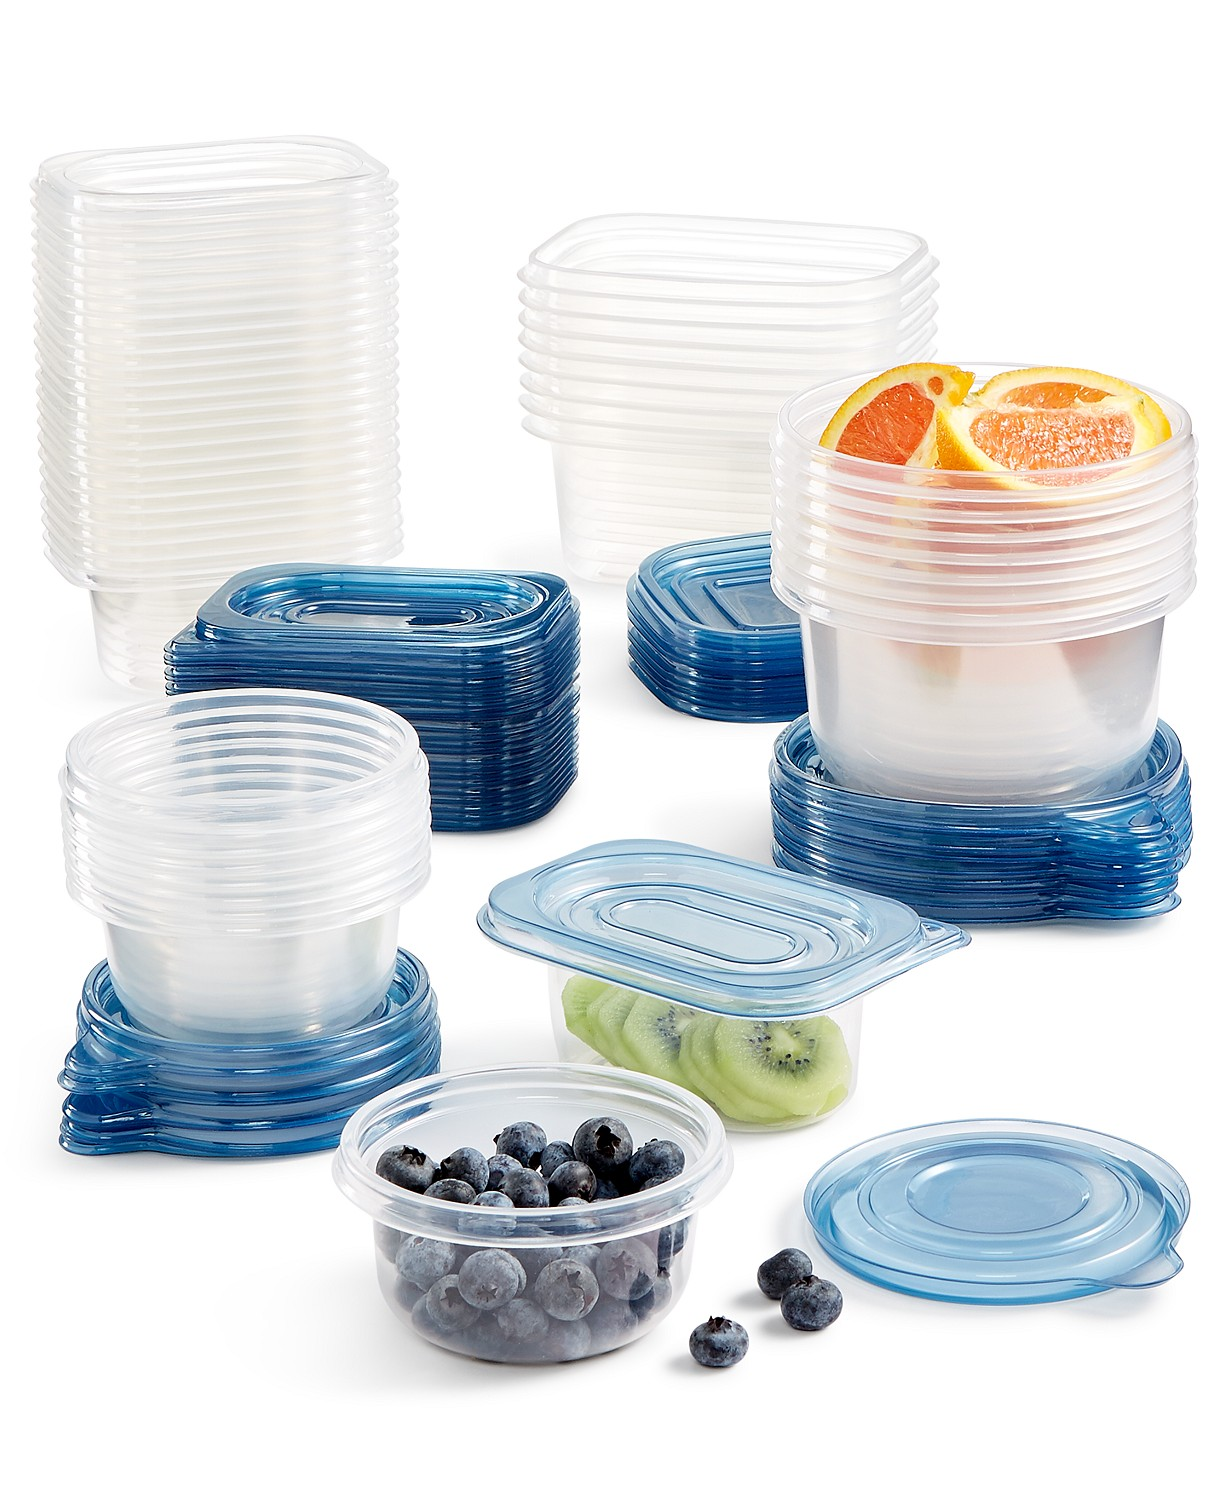 100-Pc. Food Storage Set $14.99 (70% off)